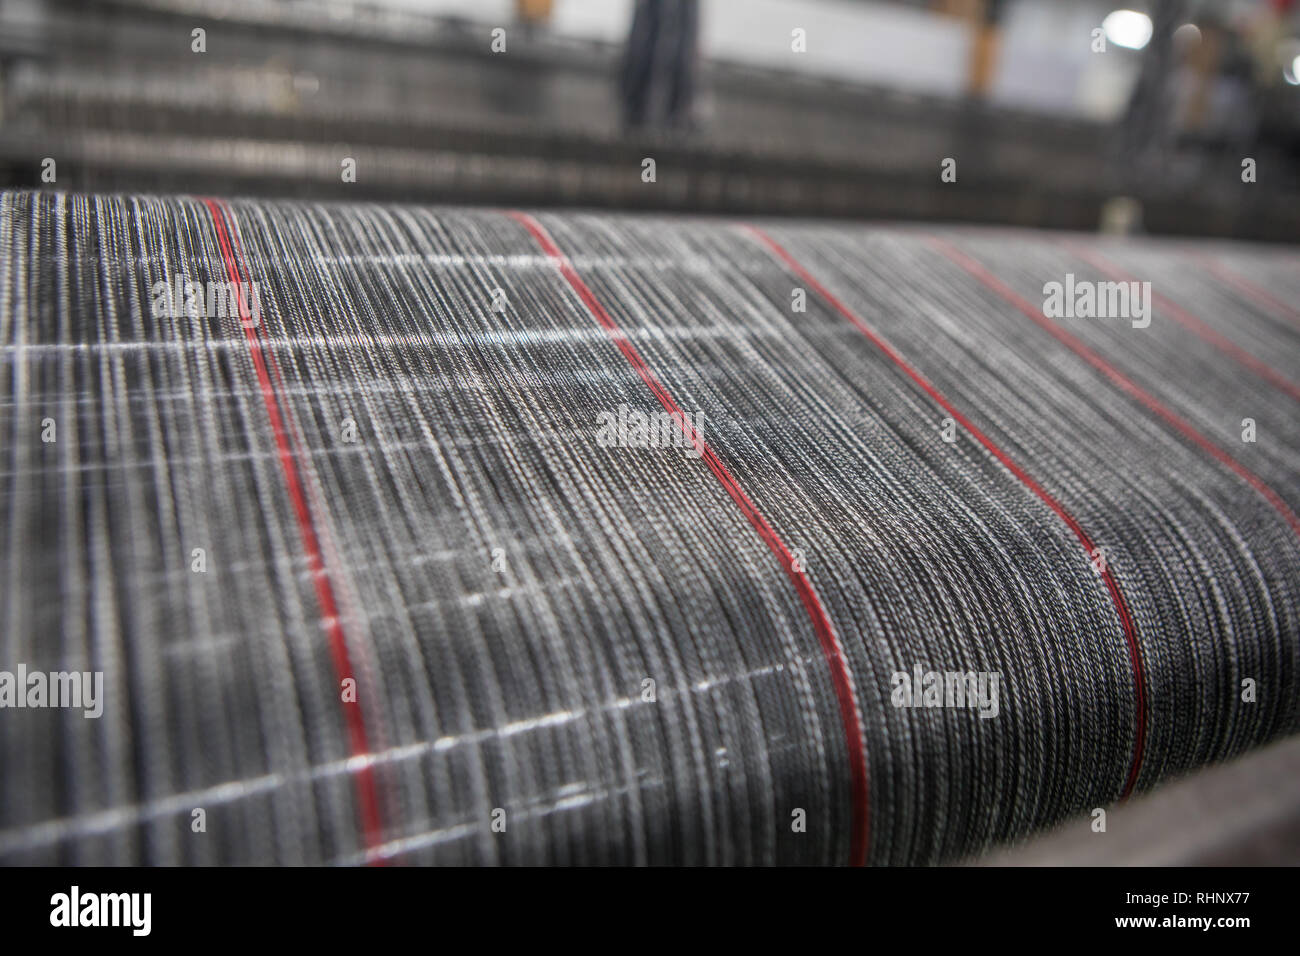 Yarn thread lines on the weaving loom machine. A loom machine for clothing or woven label in textile factory. Weaving machine for garment industry. - Stock Image